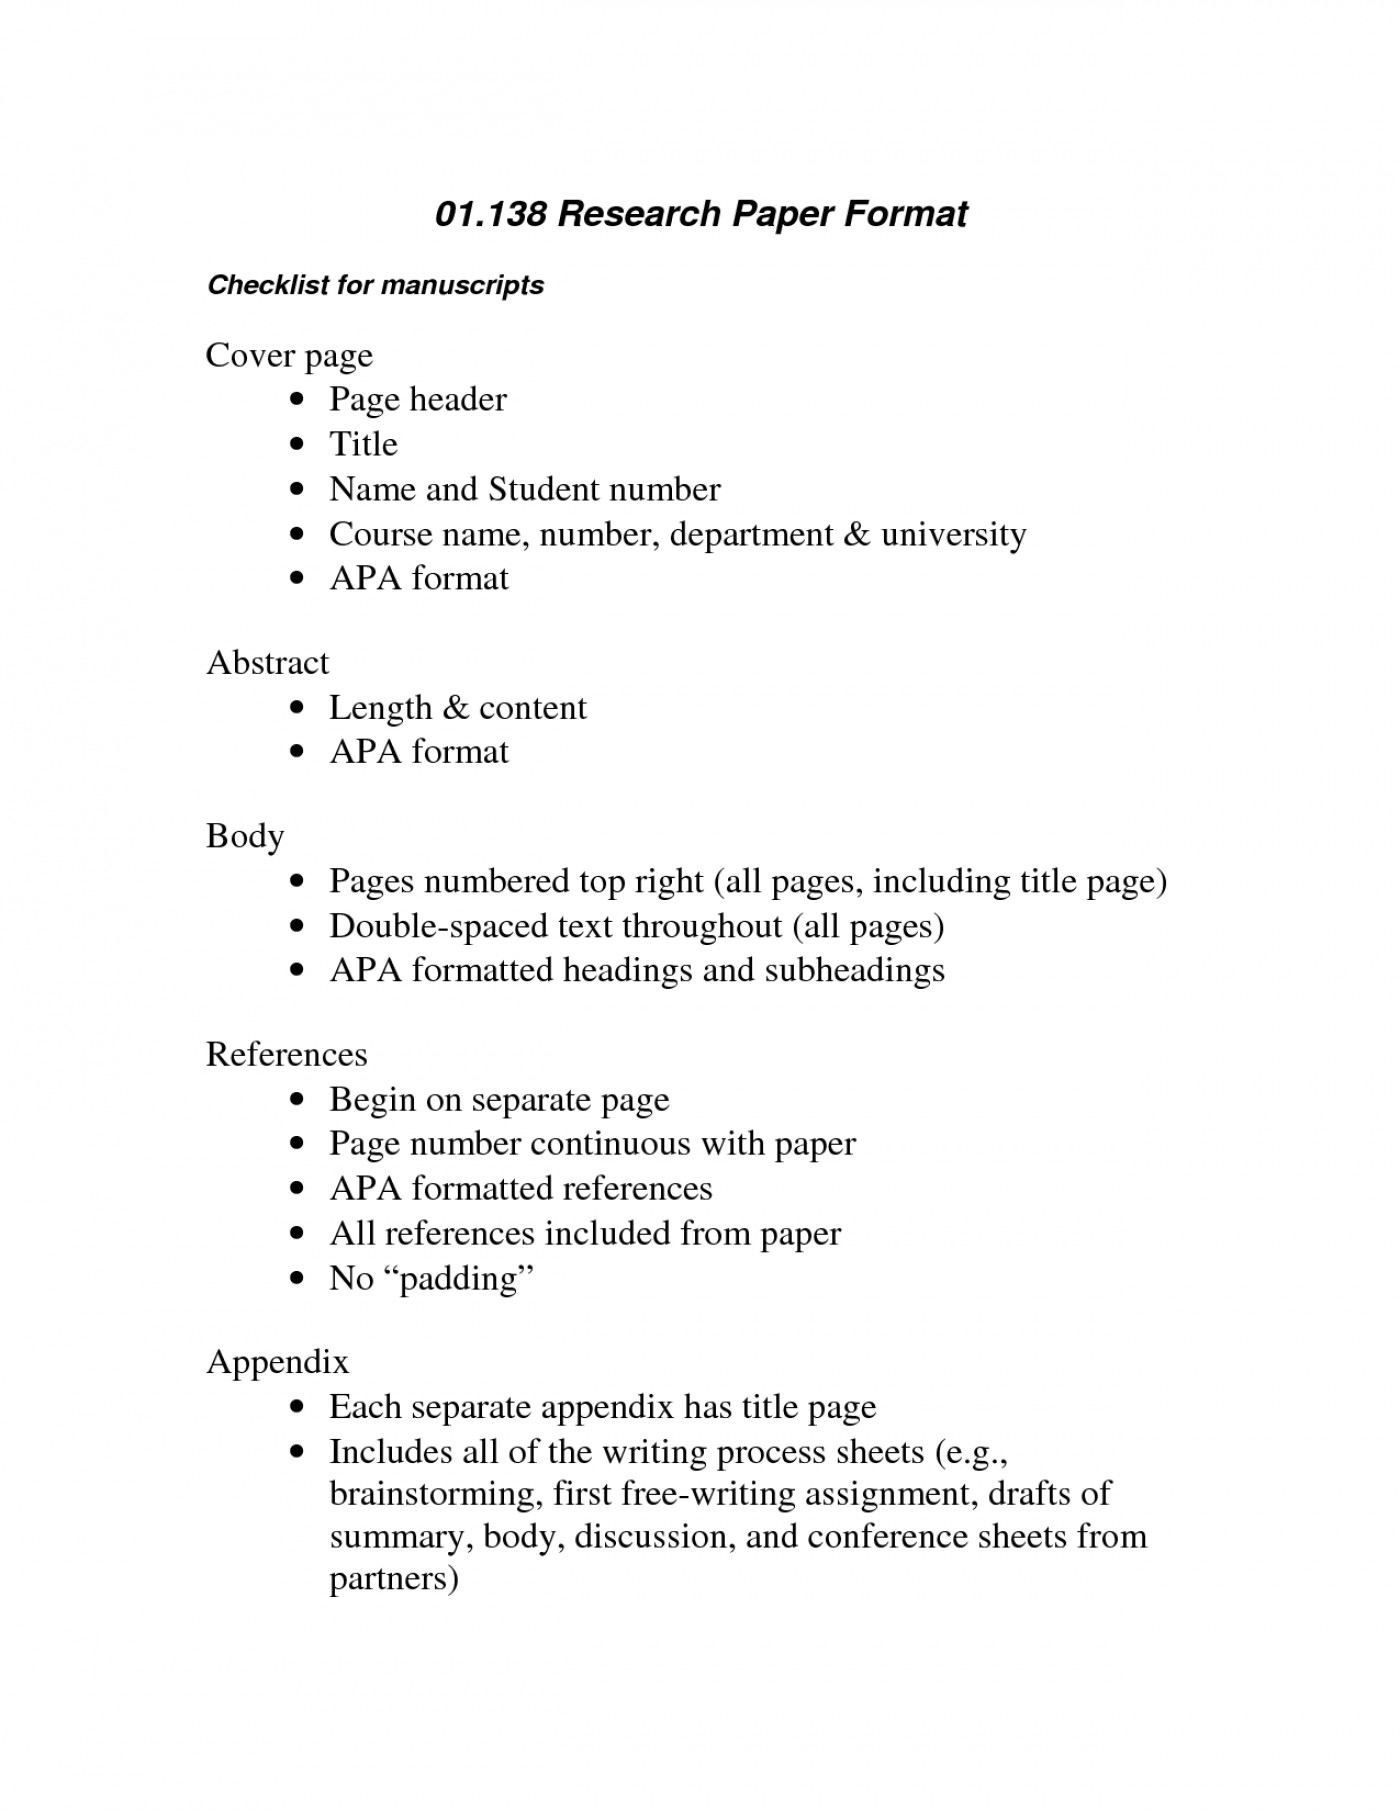 004 Outlines For Researchs Apa Awful Research Papers Sample Outline Paper Style Example 1400